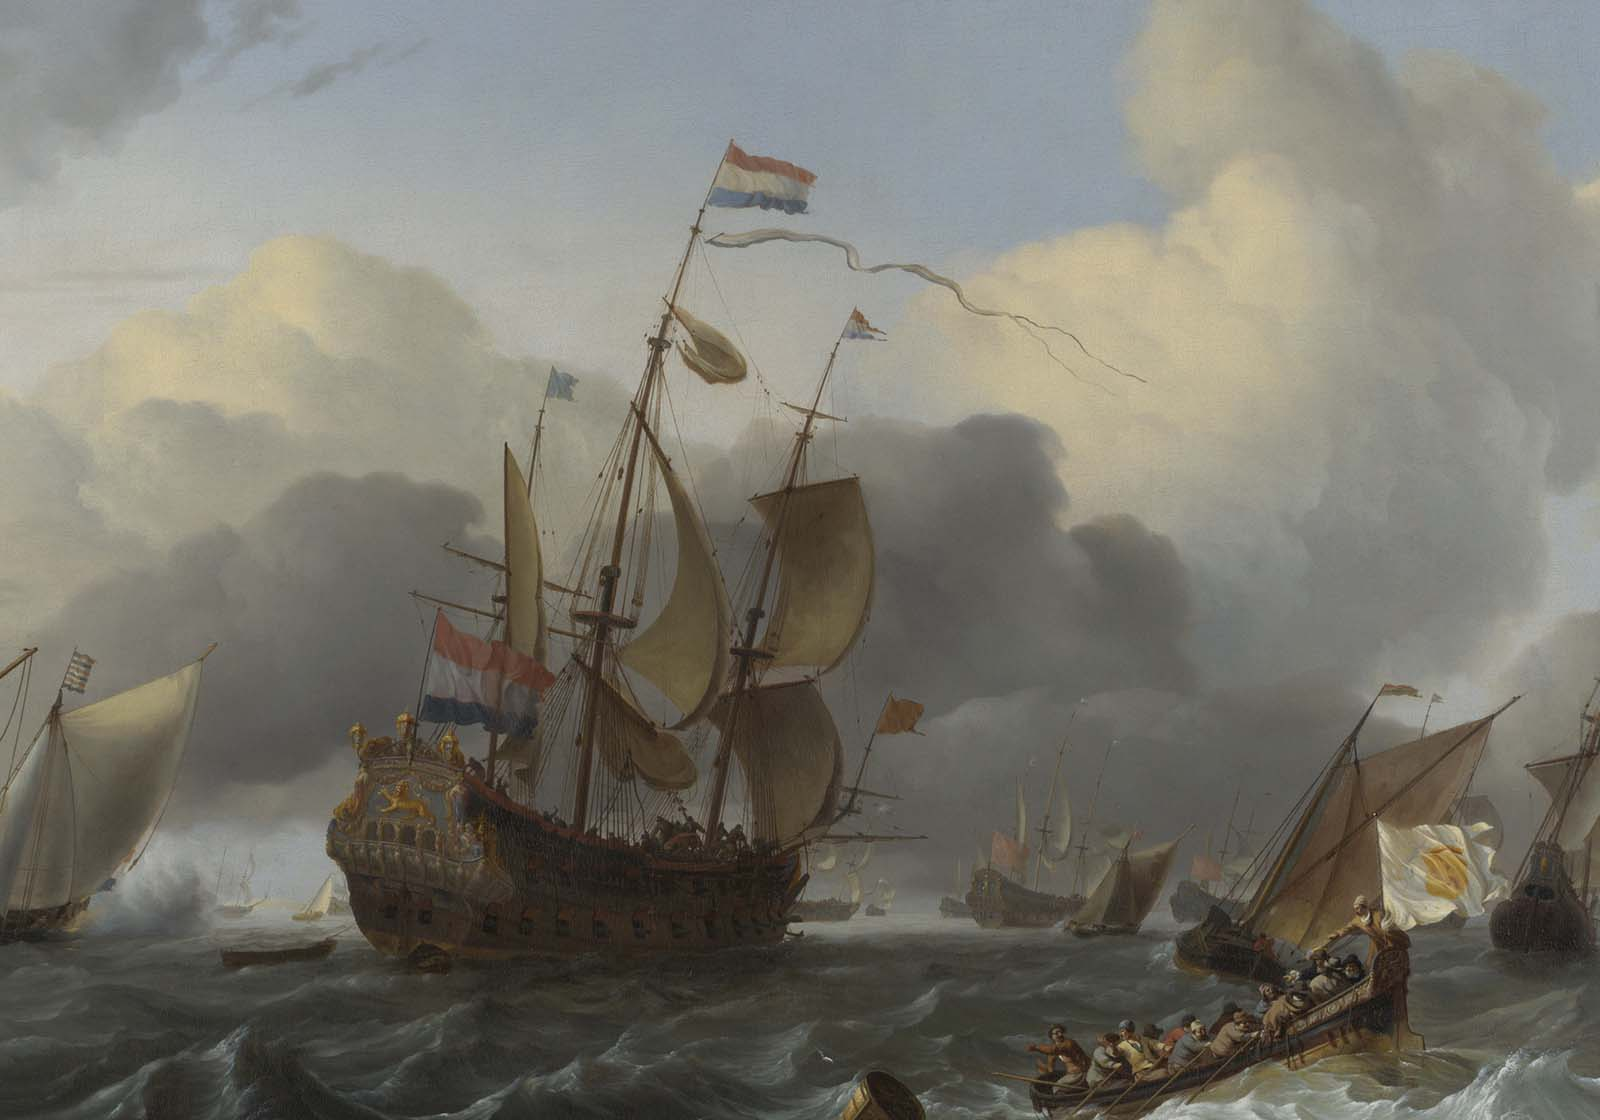 Why did the 1600s size of the Dutch merchant fleet exceed the combined fleets of England, France, Spain, Portugal, and Germany?